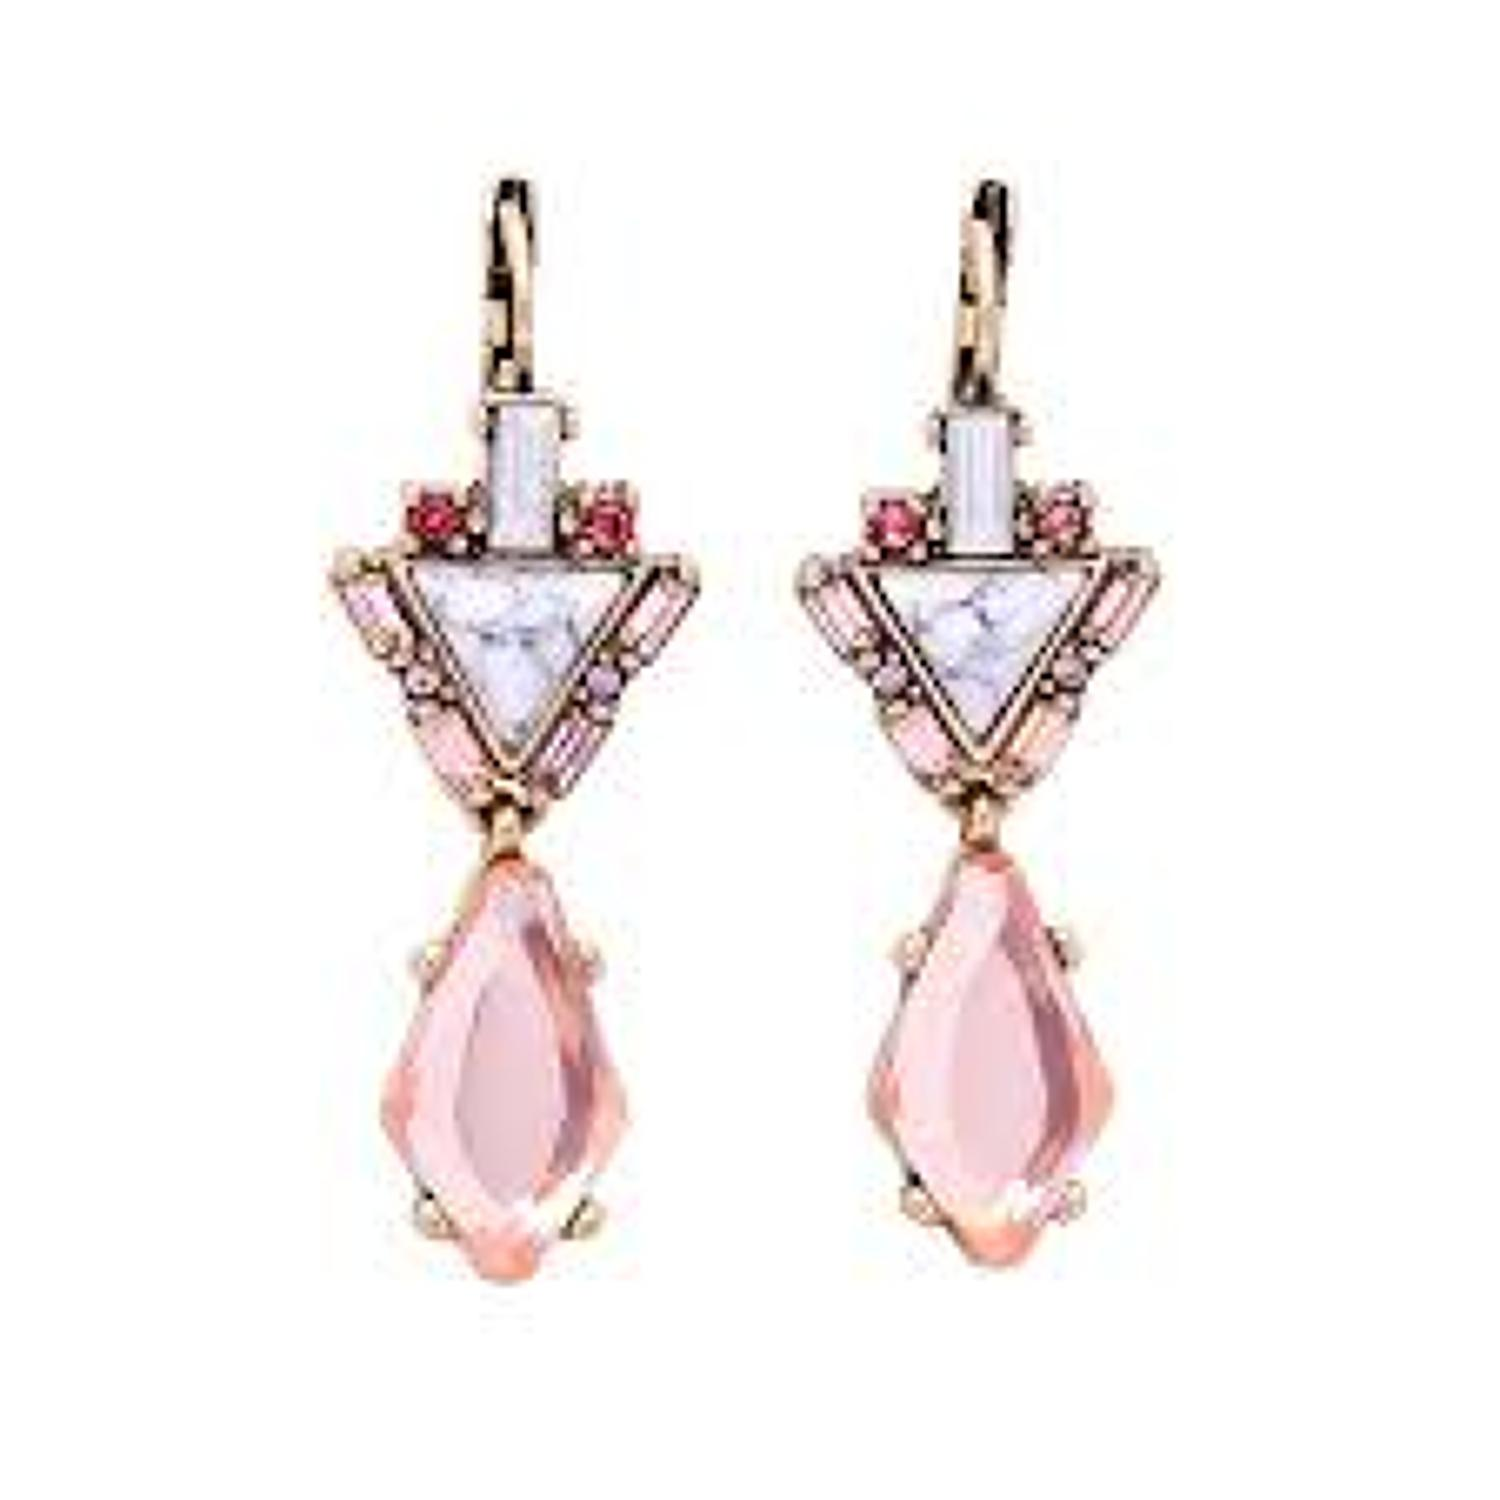 White Leaf - Marble and pink gems in antique gold finish